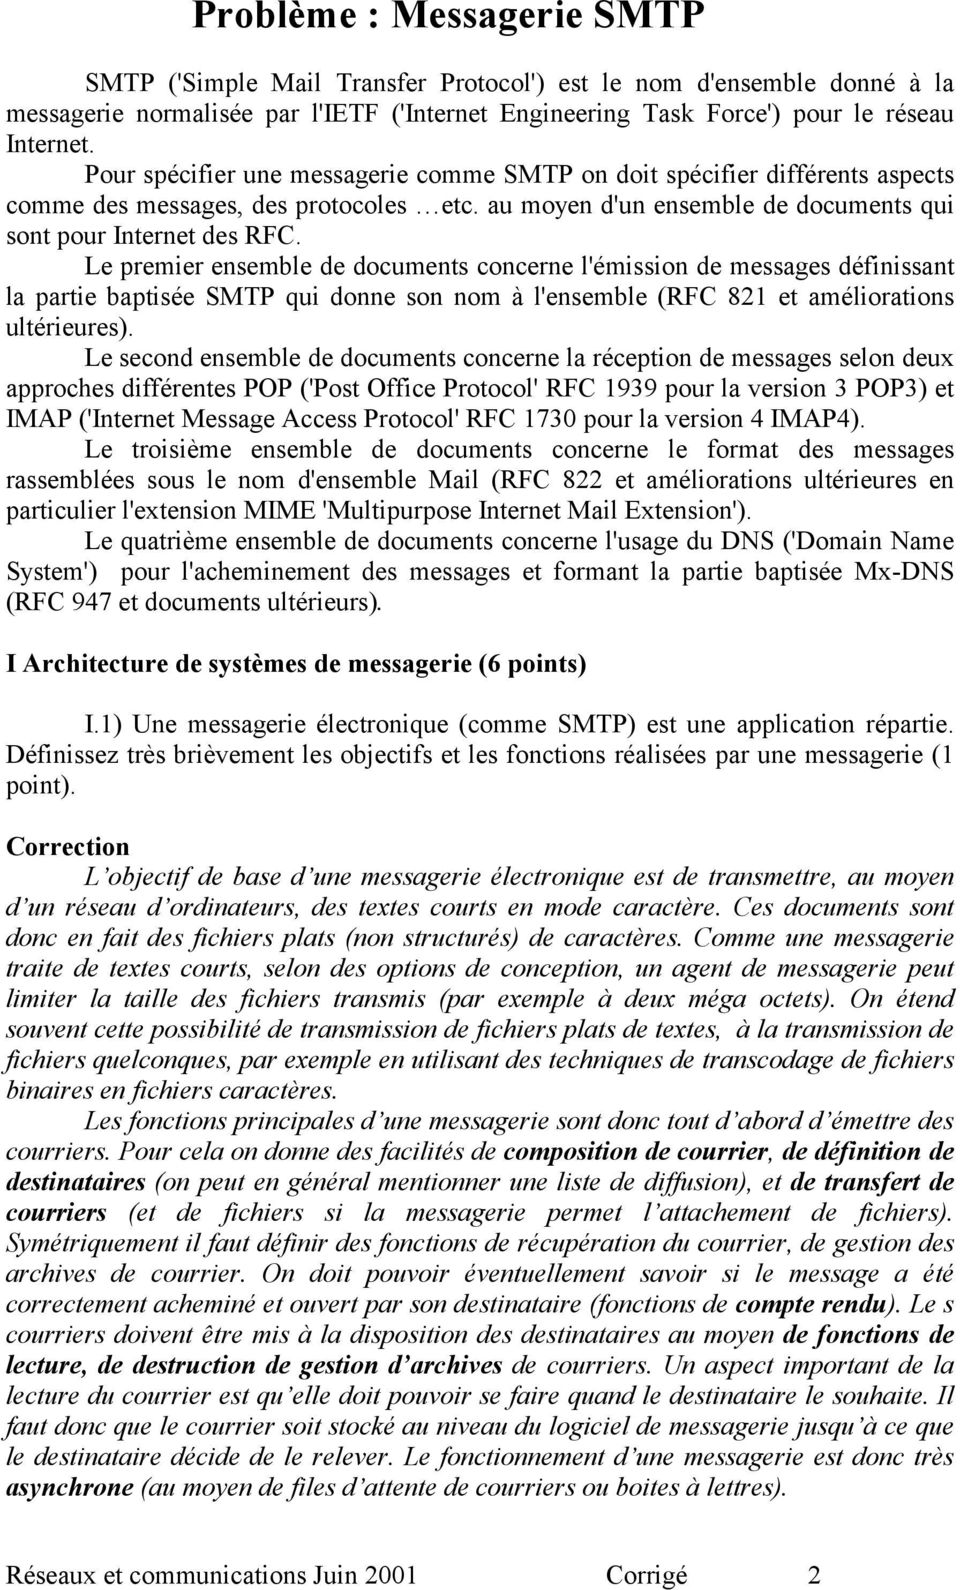 Le premier ensemble de documents concerne l'émission de messages définissant la partie baptisée SMTP qui donne son nom à l'ensemble (RFC 821 et améliorations ultérieures).